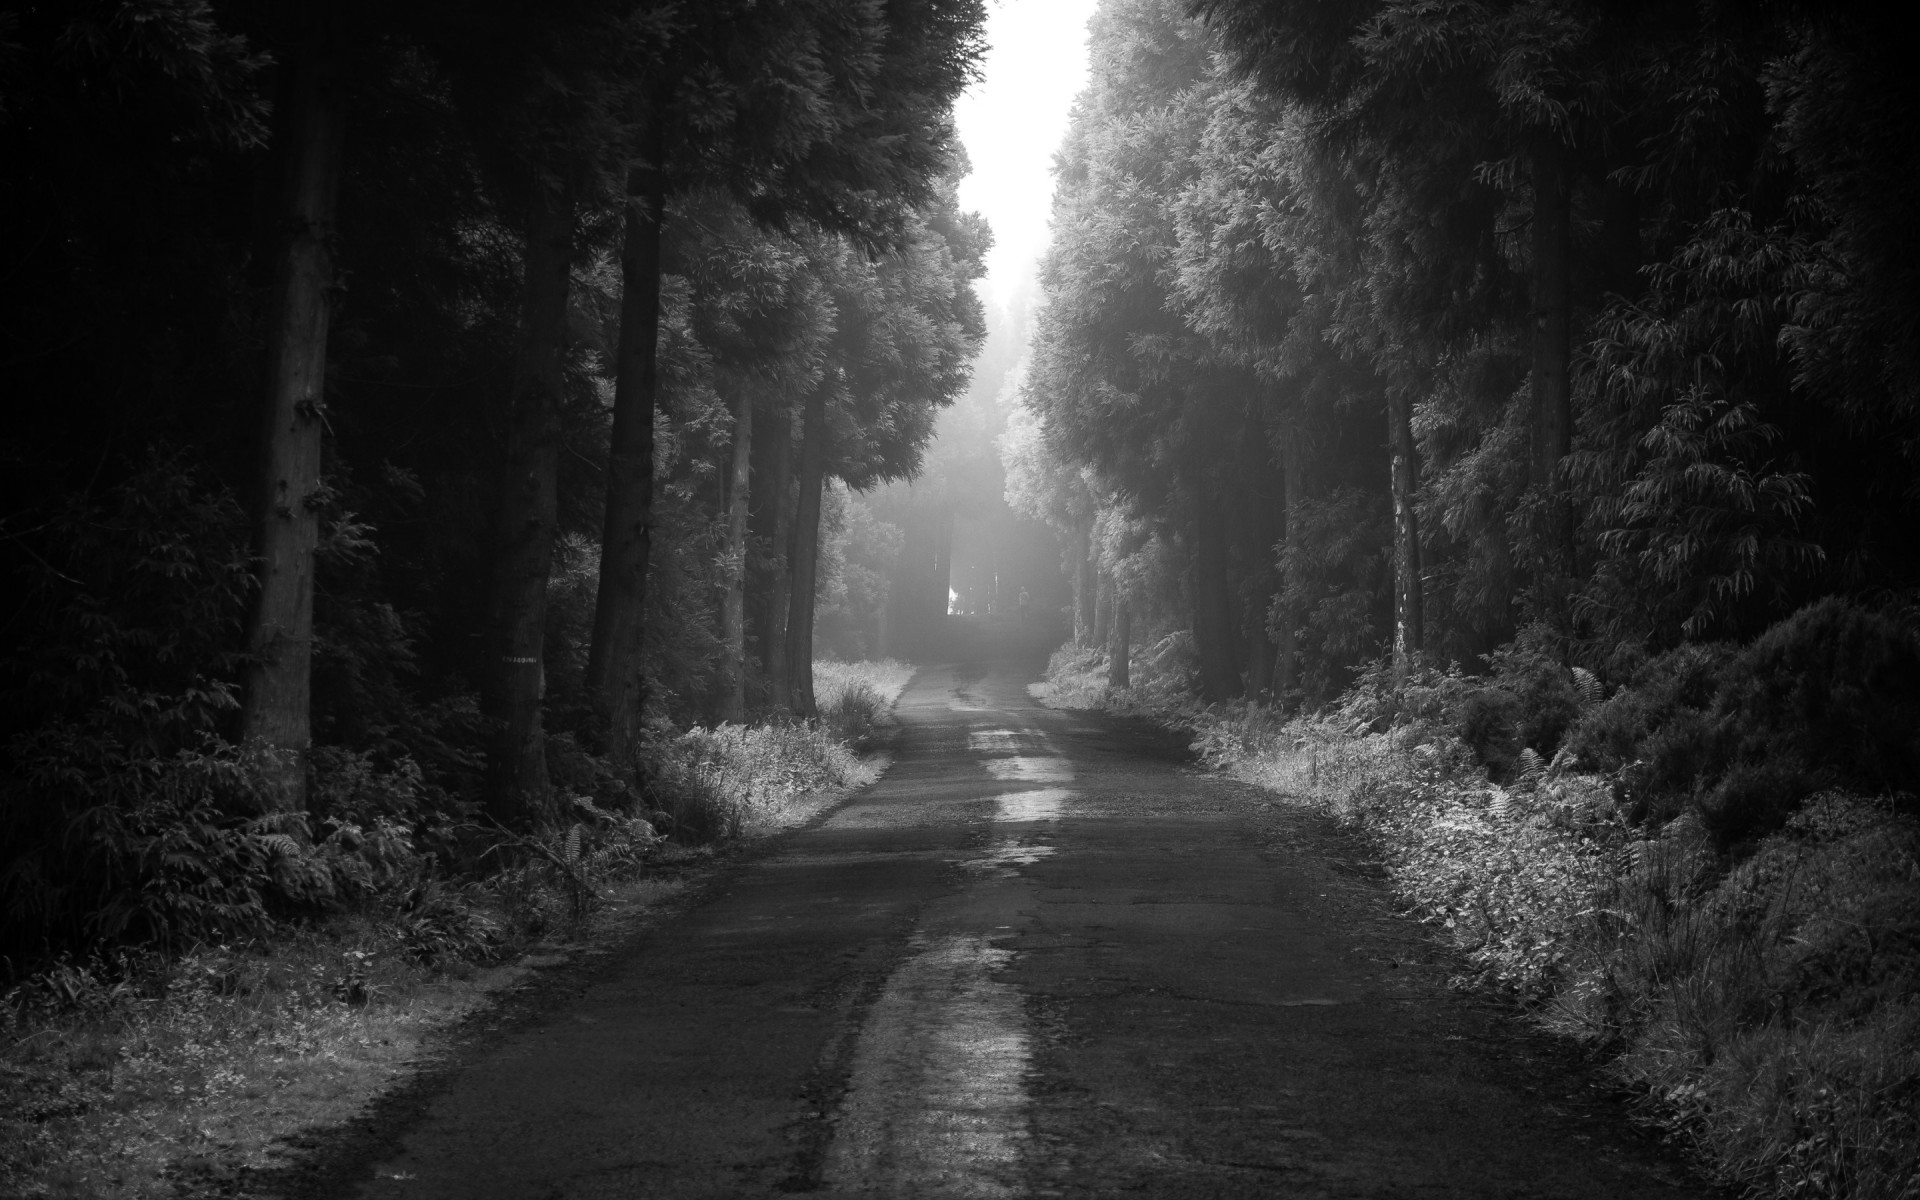 Road thru the dark forest wallpaper 1920x1200